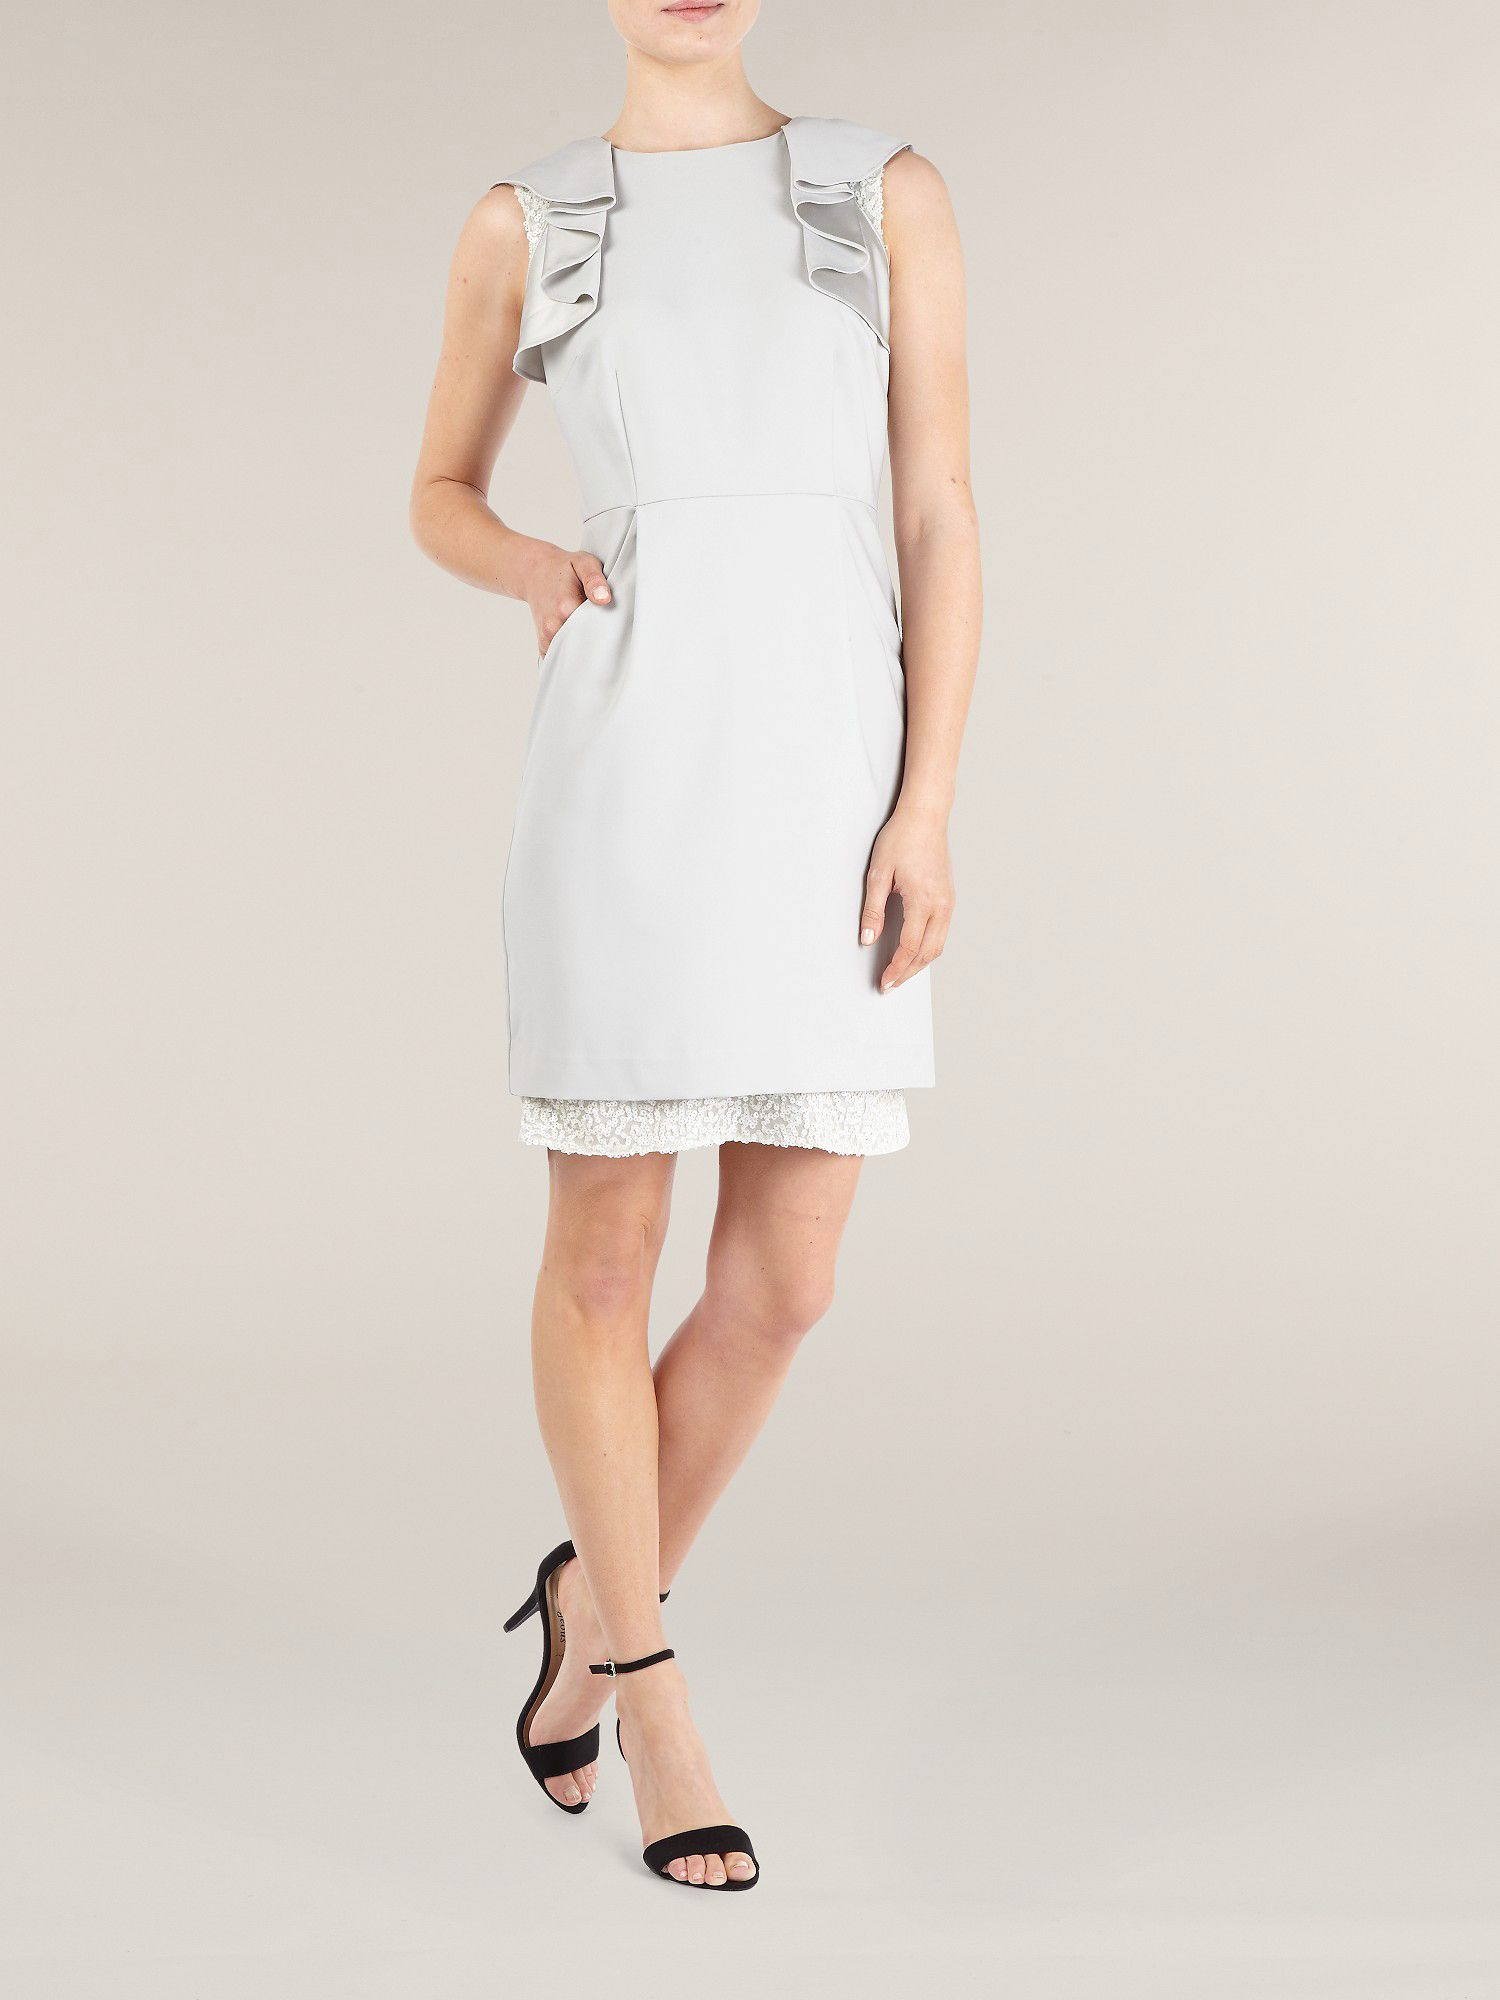 Double layer textured dress